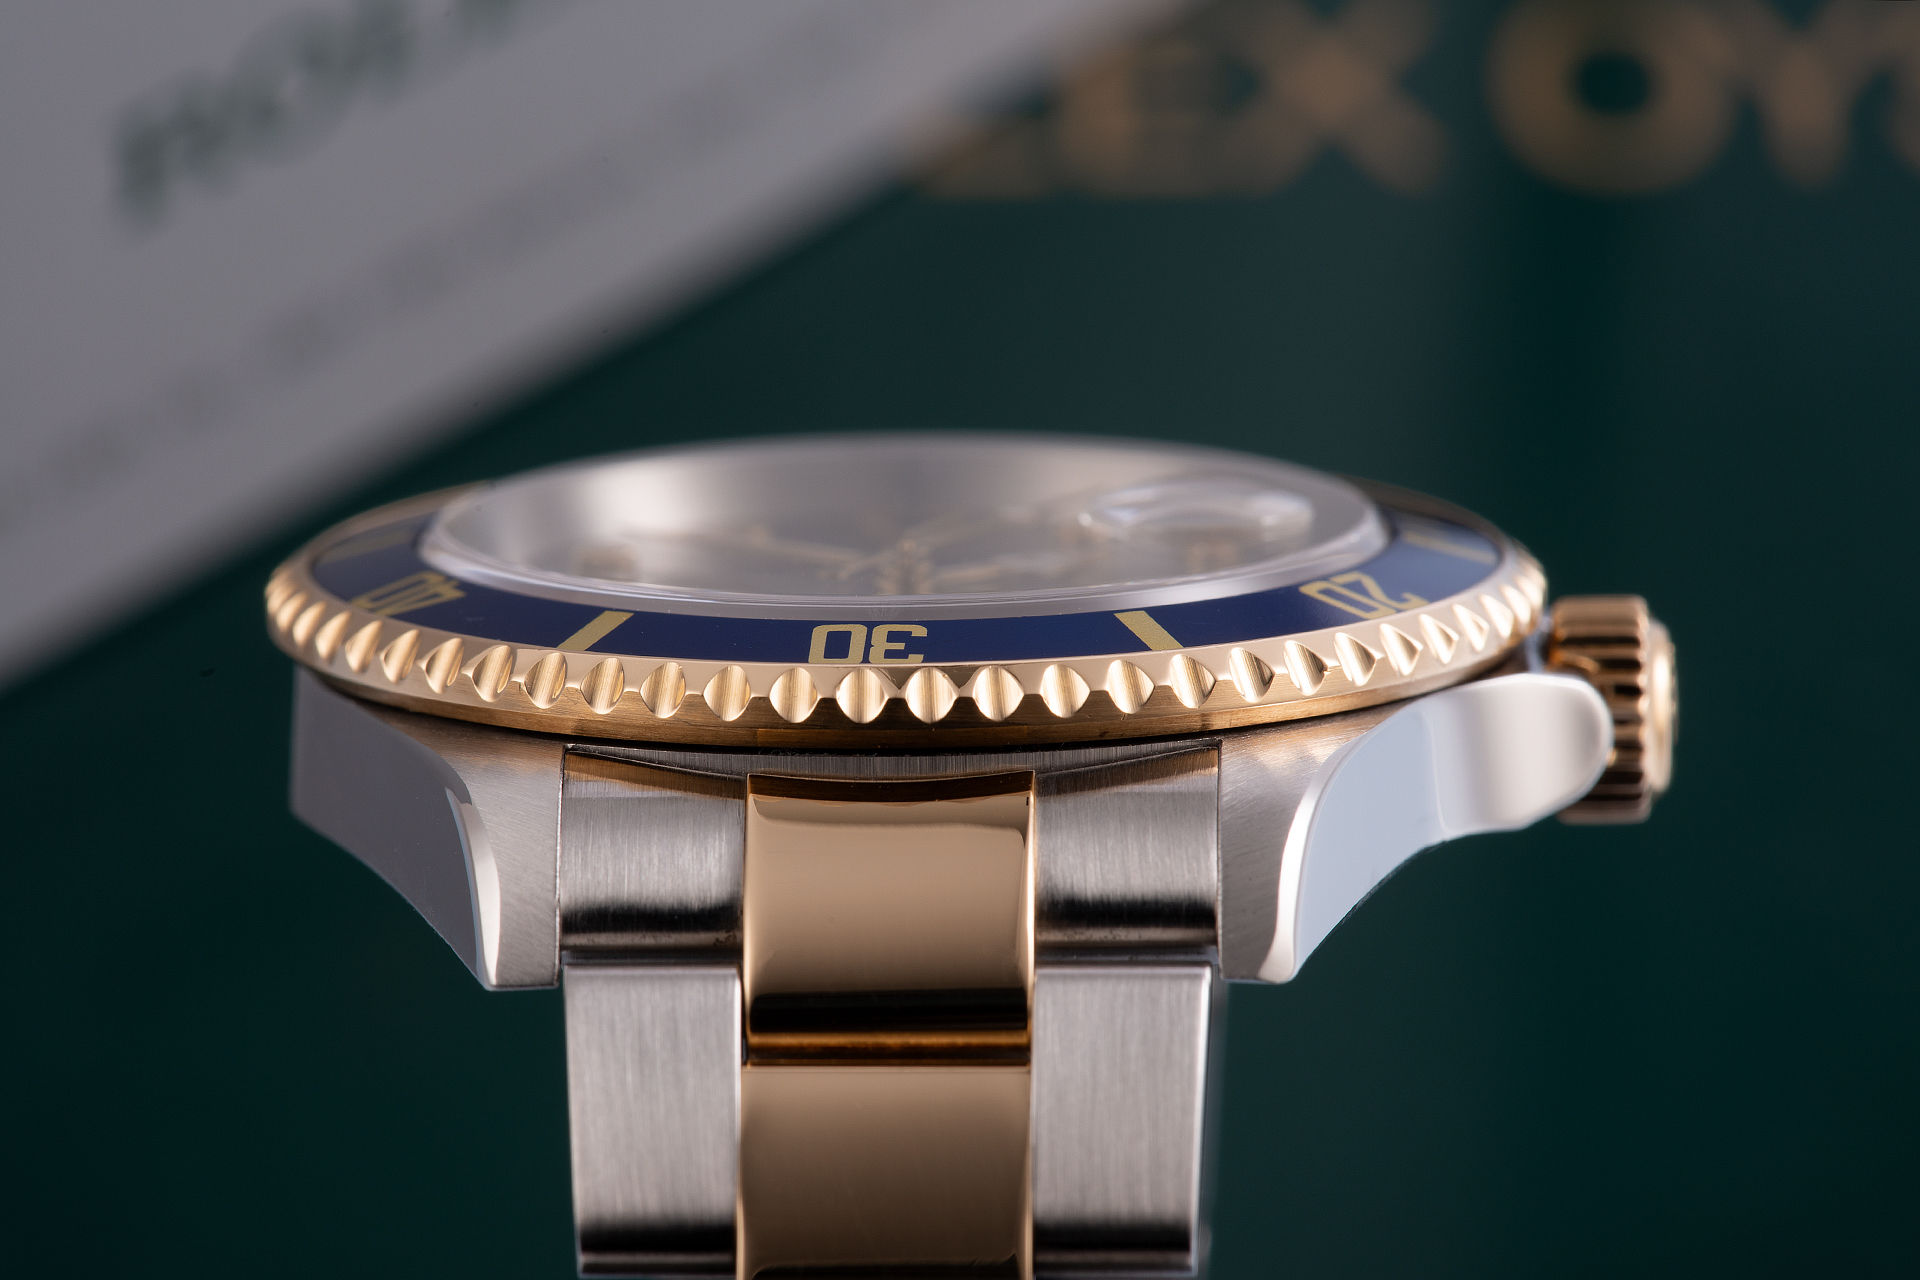 ref 16613 | 'Box & Papers' Gold & Steel | Rolex Submariner Date